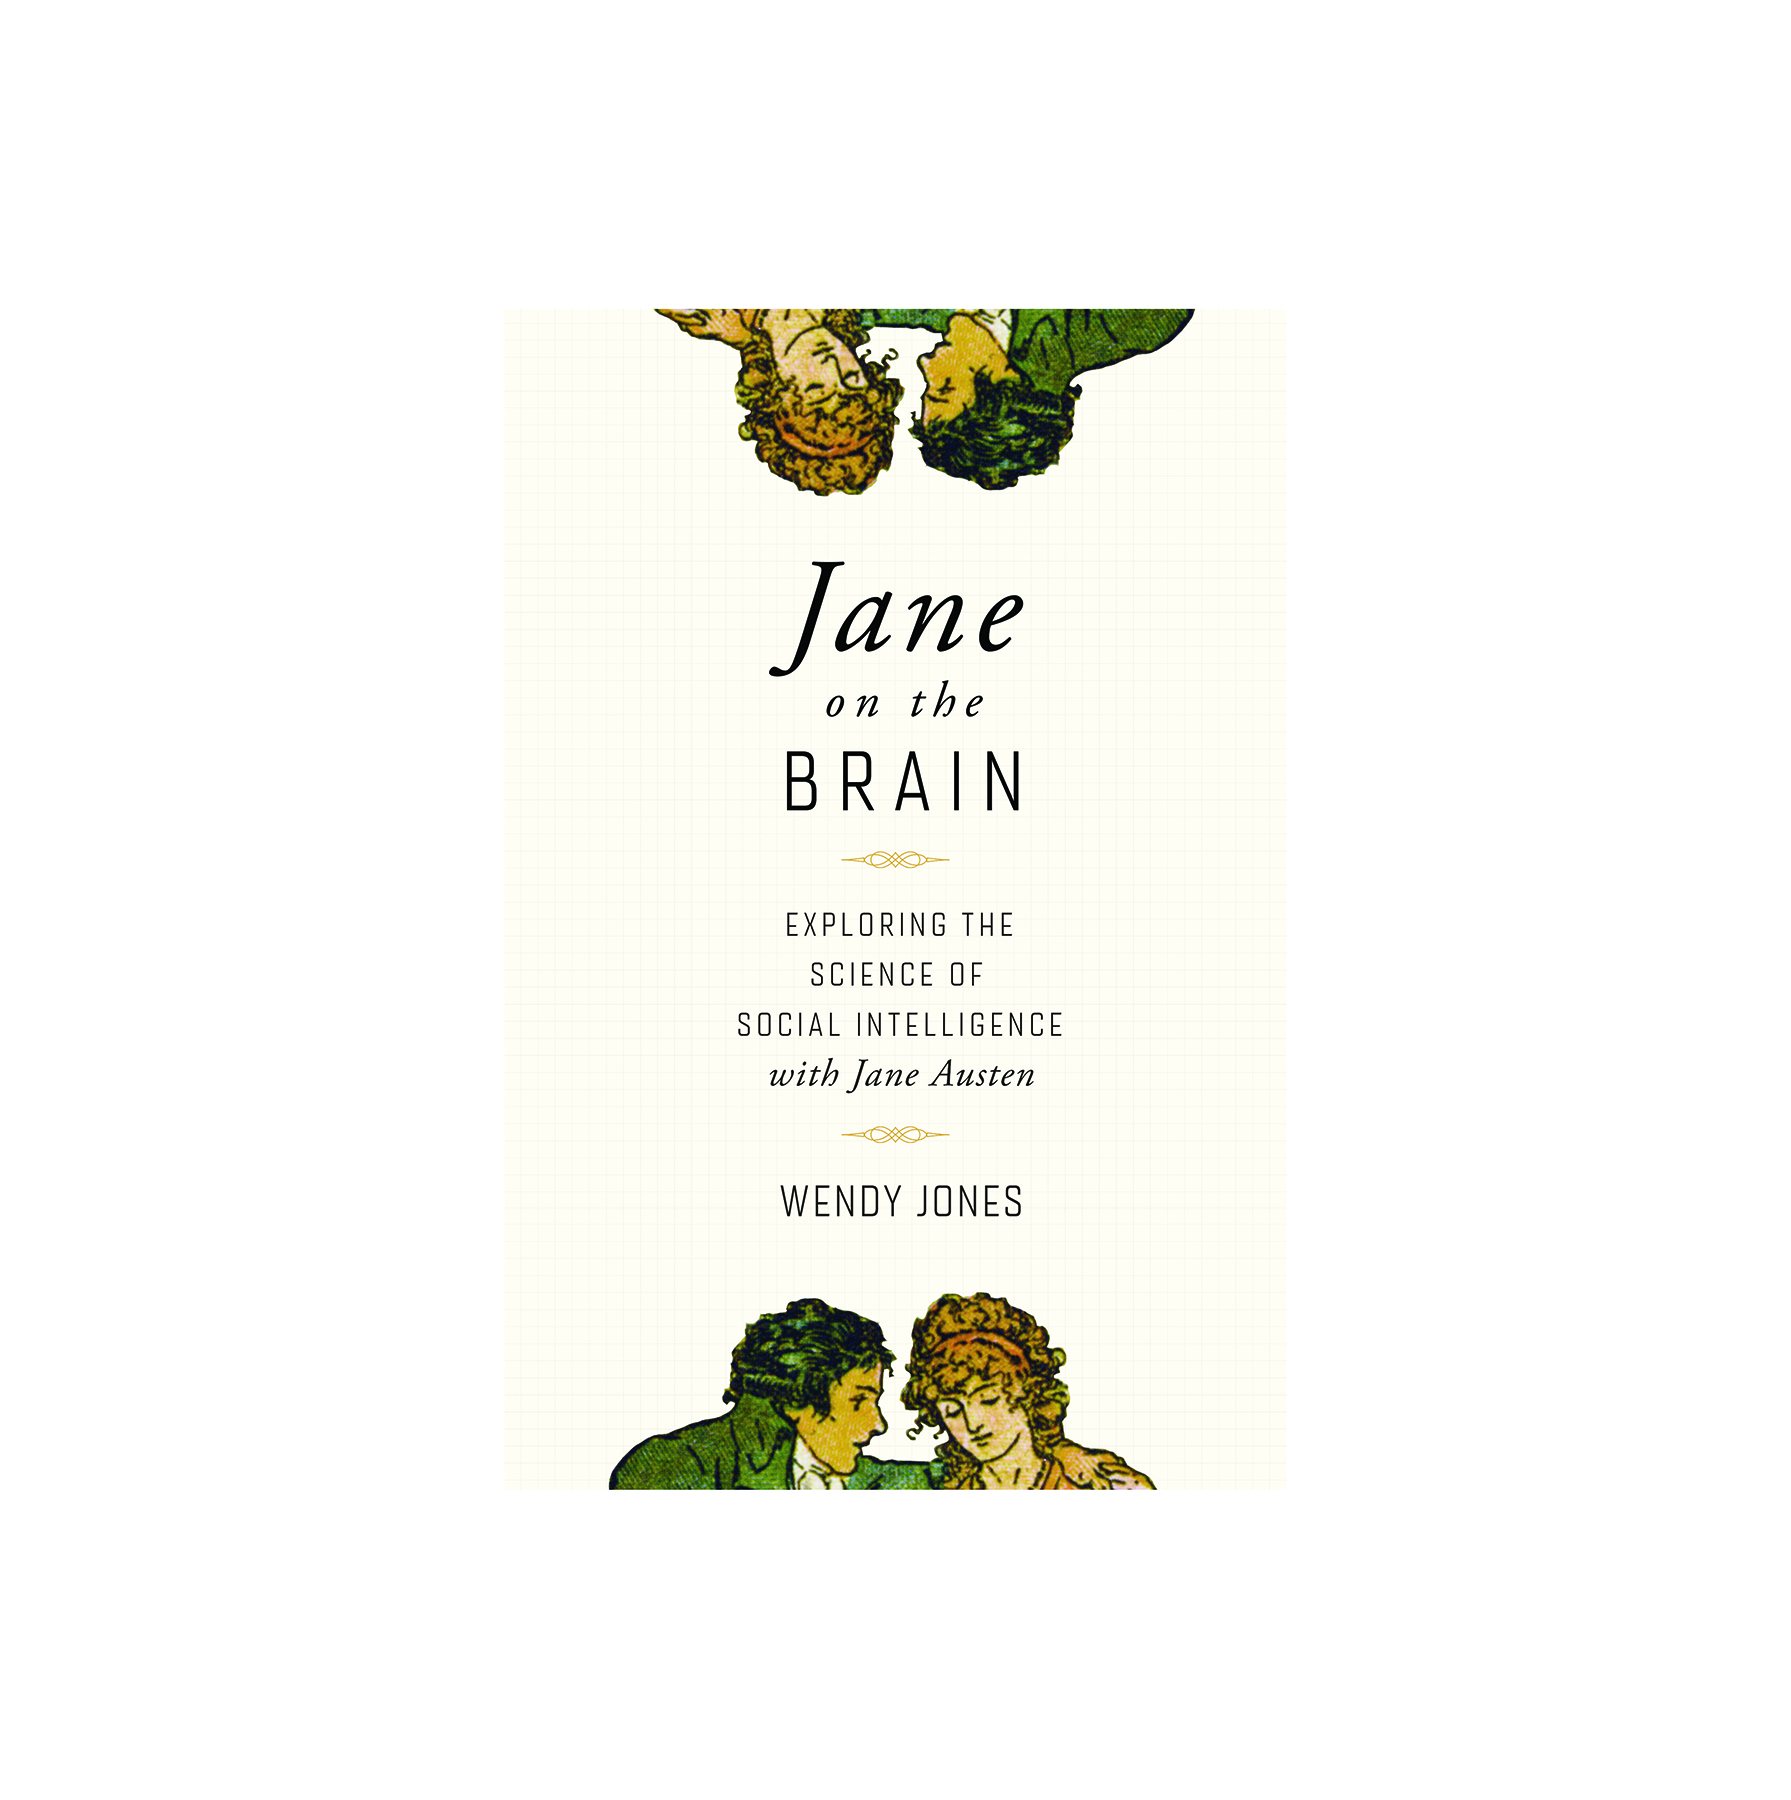 Jane on the Brain: Exploring the Science of Social Intelligence with Jane Austen, by Wendy Jones